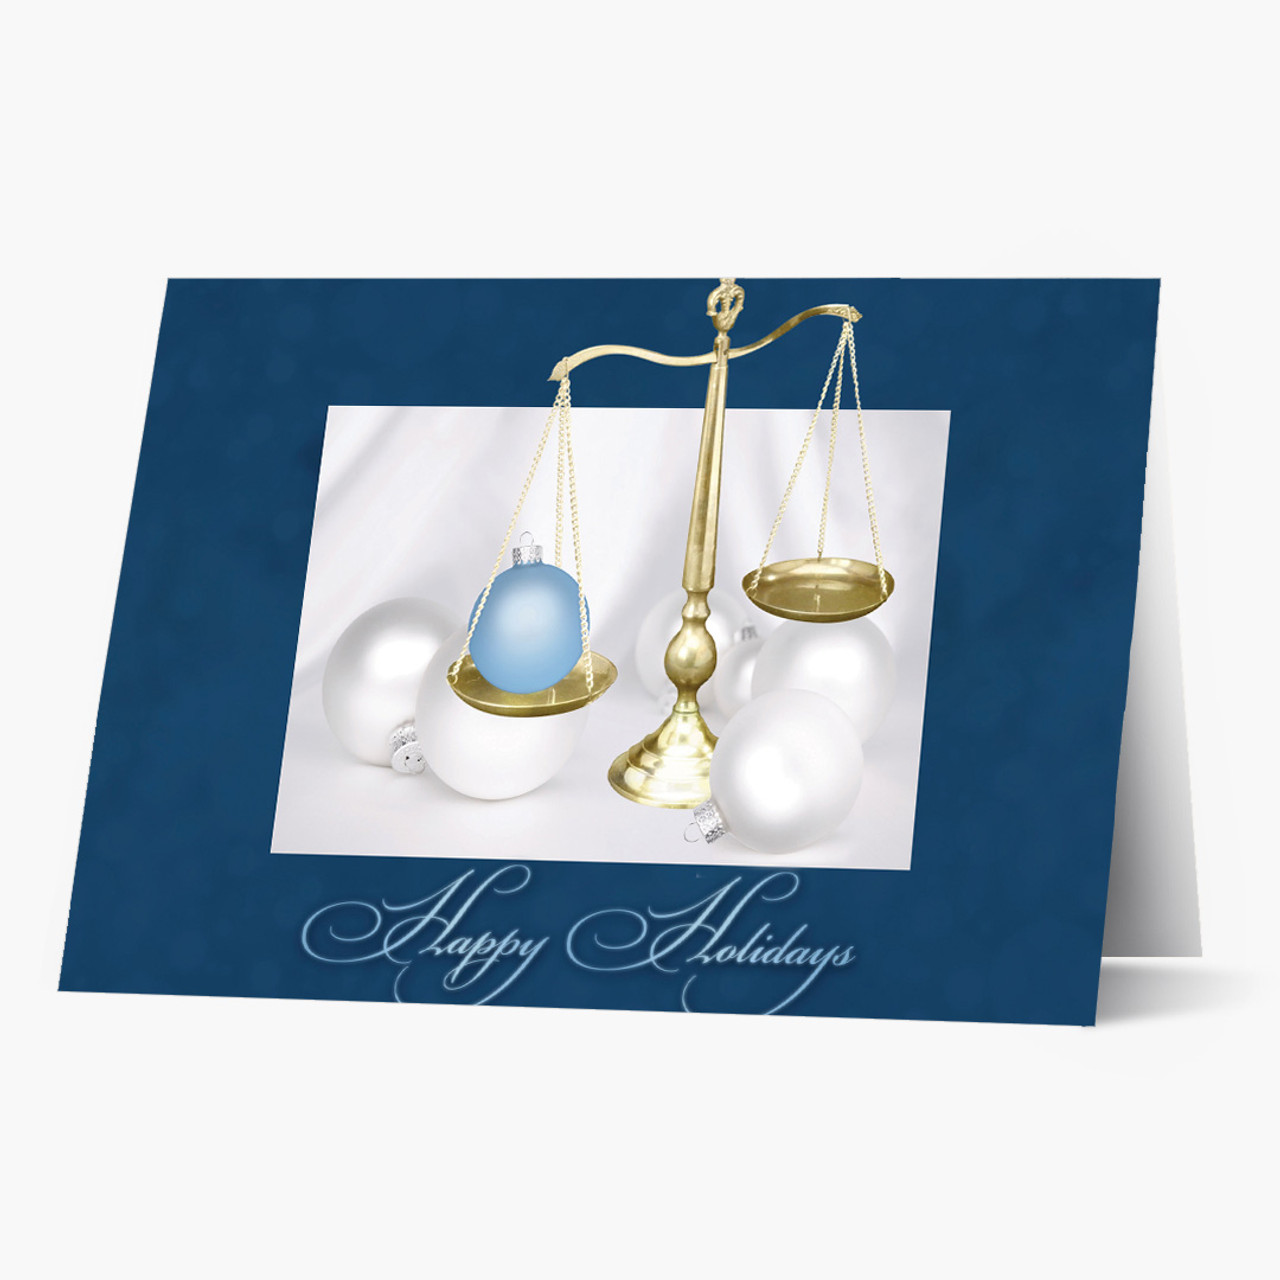 Legal Holiday Greetings